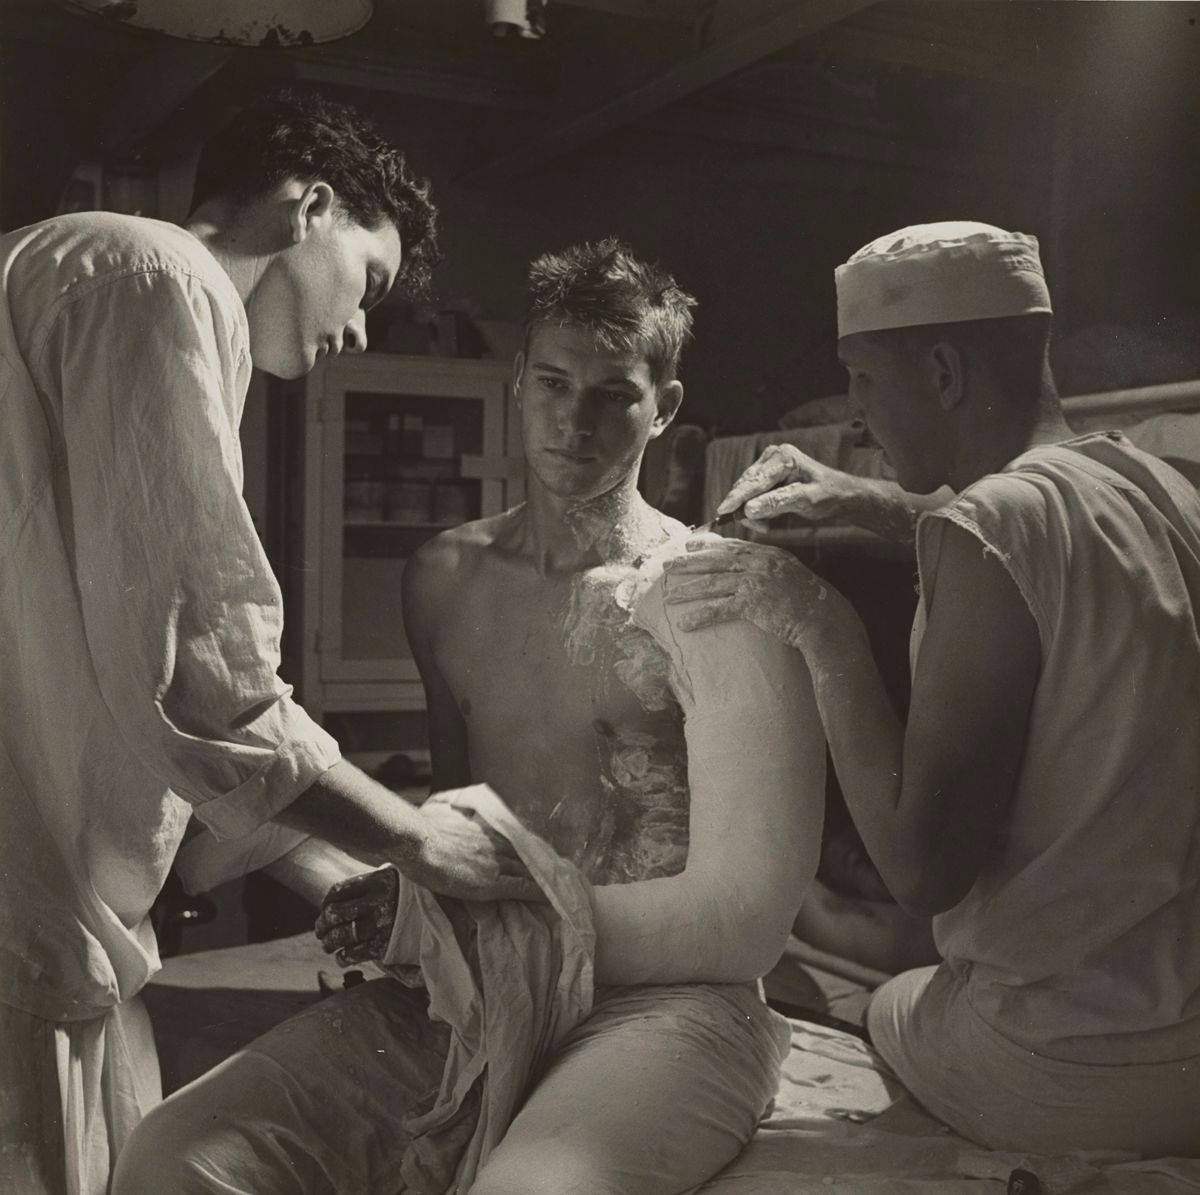 A black-and-white photograph of three light-skinned, young men. The central figure sits on a doctor's examination table, turned three quarters to the left while having plaster applied to his left arm. He stares off to the left, his hair spikey and messy, his facial expression somber. He is shirtless and having his arm, crooked at the elbow, set from shoulder to fingers in a plaster cast. Excess plaster is slathered and splattered on his neck, chest, and stomach. He wears a band on the ring finger of this left hand. At left, another young man is seen from the side, his head bent slightly forward, light from above cast on his face. He is using a cloth on the patient's arm. He has dark short hair, wears a loose-fitting shirt with the sleeves rolled up. At right, another young man is cutting away the rough edge of the plaster on the patient's shoulder. This man sits on the table with the patient, his back to us, the sleeves cut off his shirt, a small white cap on his head. The background shows a supply cabinet and bunks. Light streams down from the top right corner of the photo.